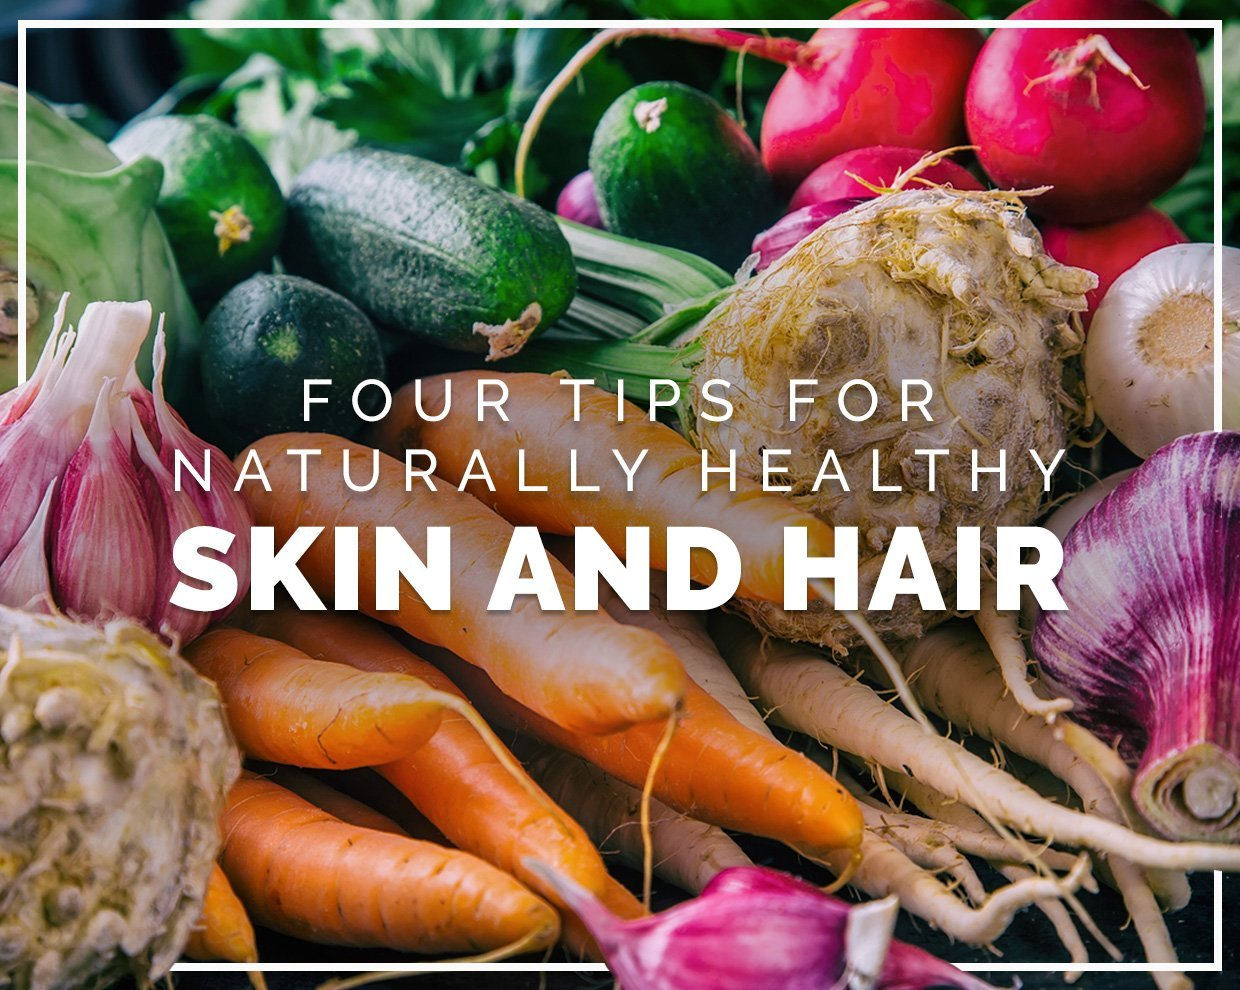 Four tips for naturally healthy skin and hair